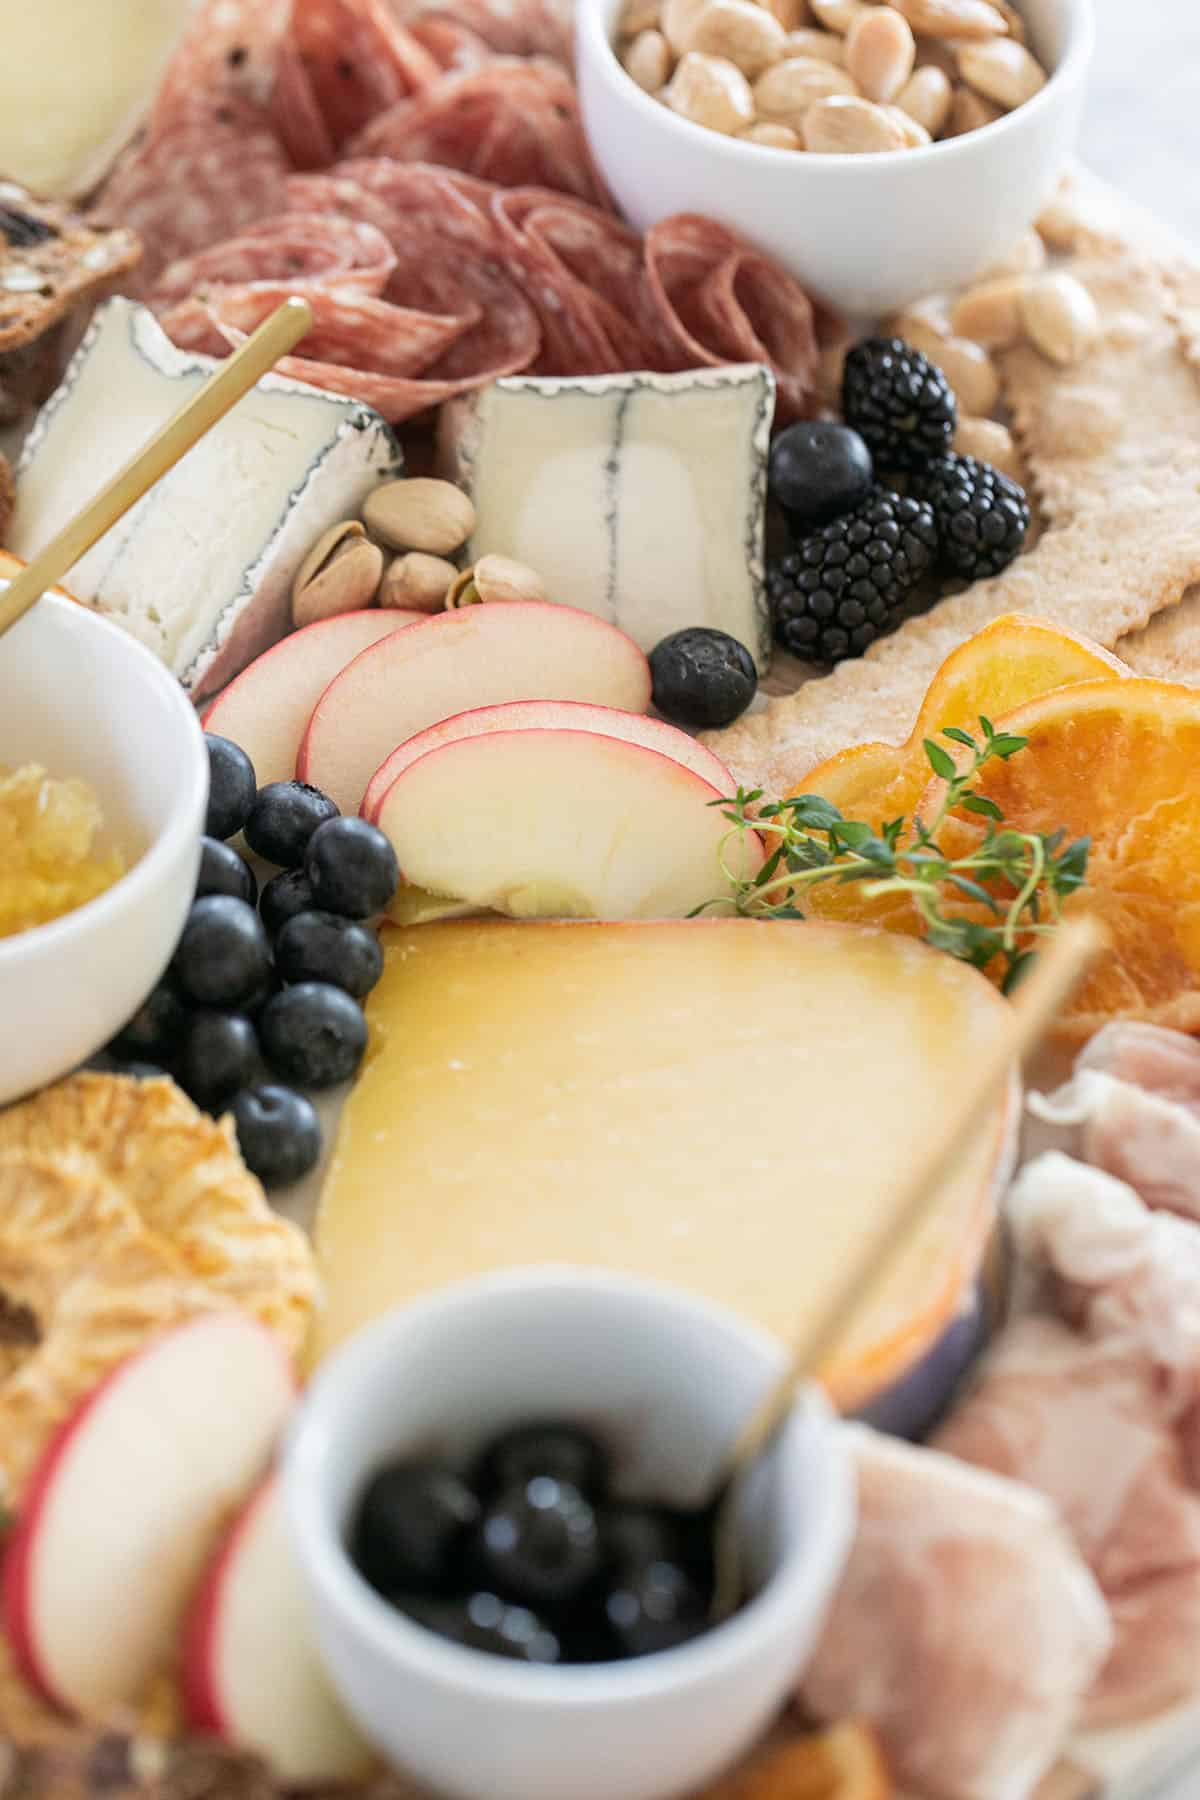 cheese platter with olives, fruit, meat and orange slices